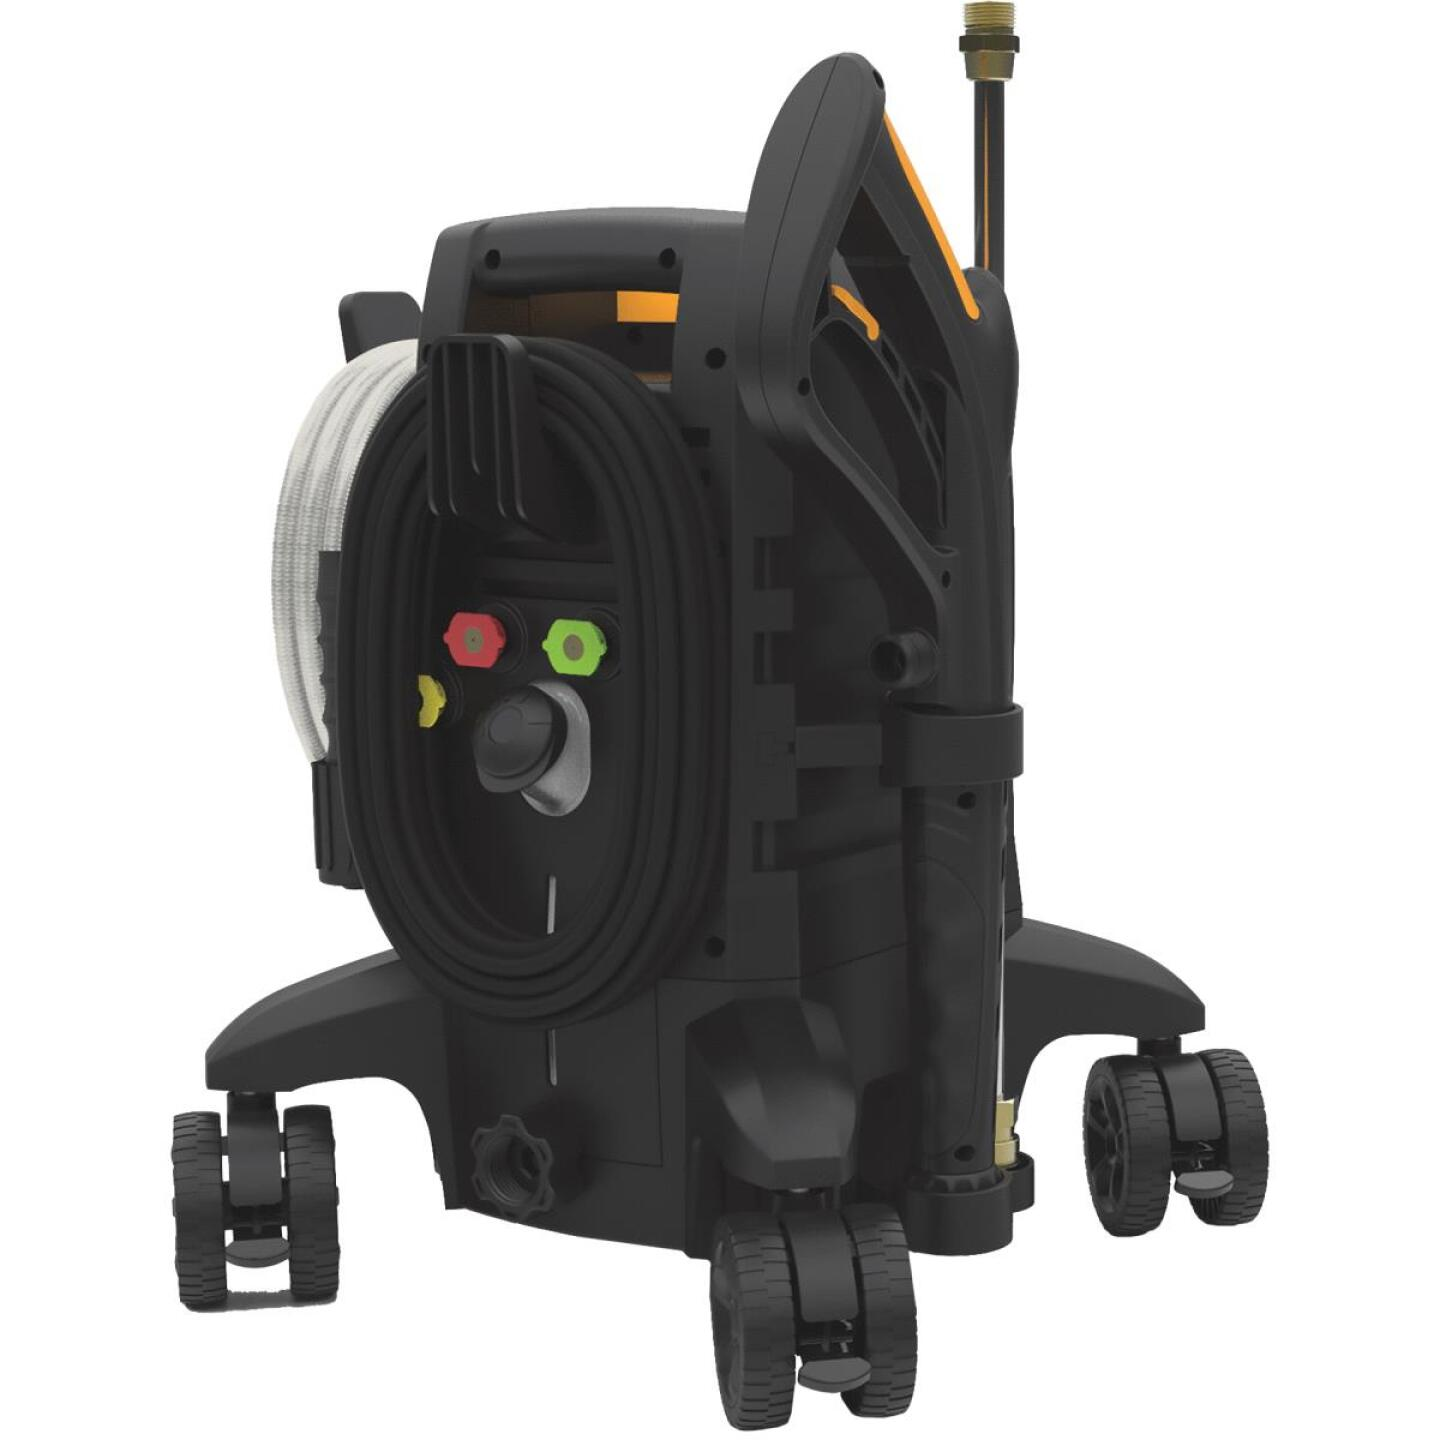 Powerplay Spyder 2030 psi 1.4 GPM Cold Water Electric Pressure Washer Image 4